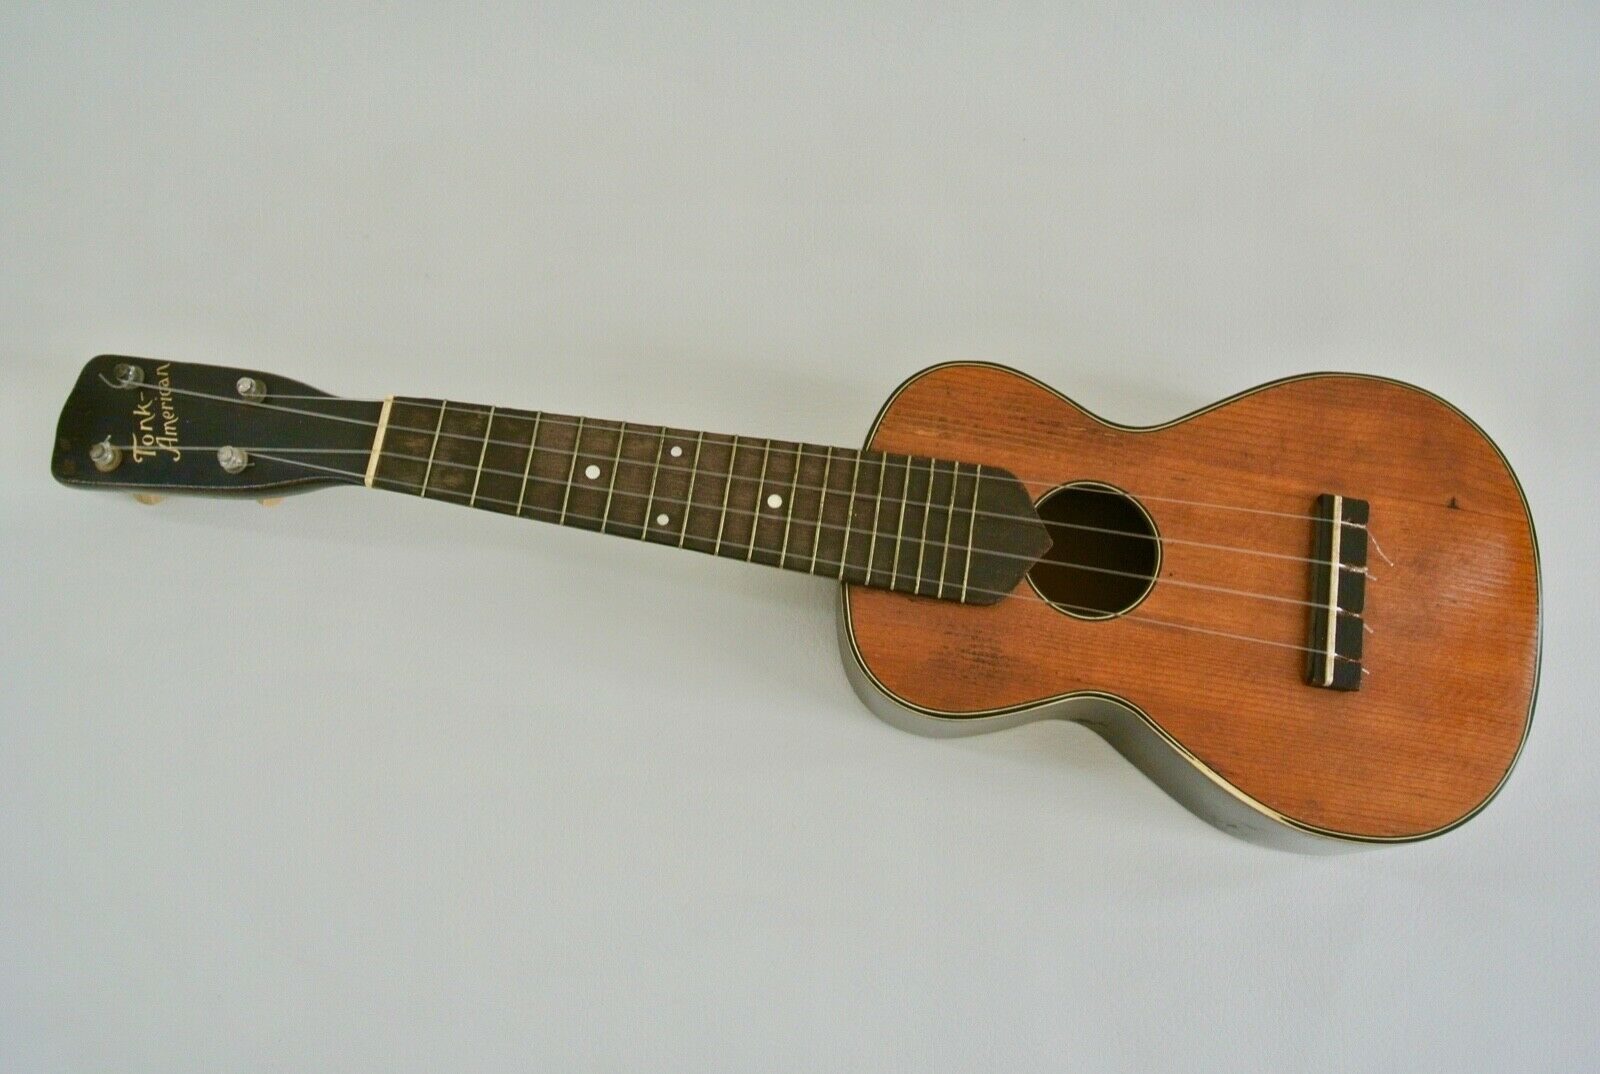 Vintage 1920's Tonk Brothers Soprano Ukulele Rare 17 Frets for Collectors